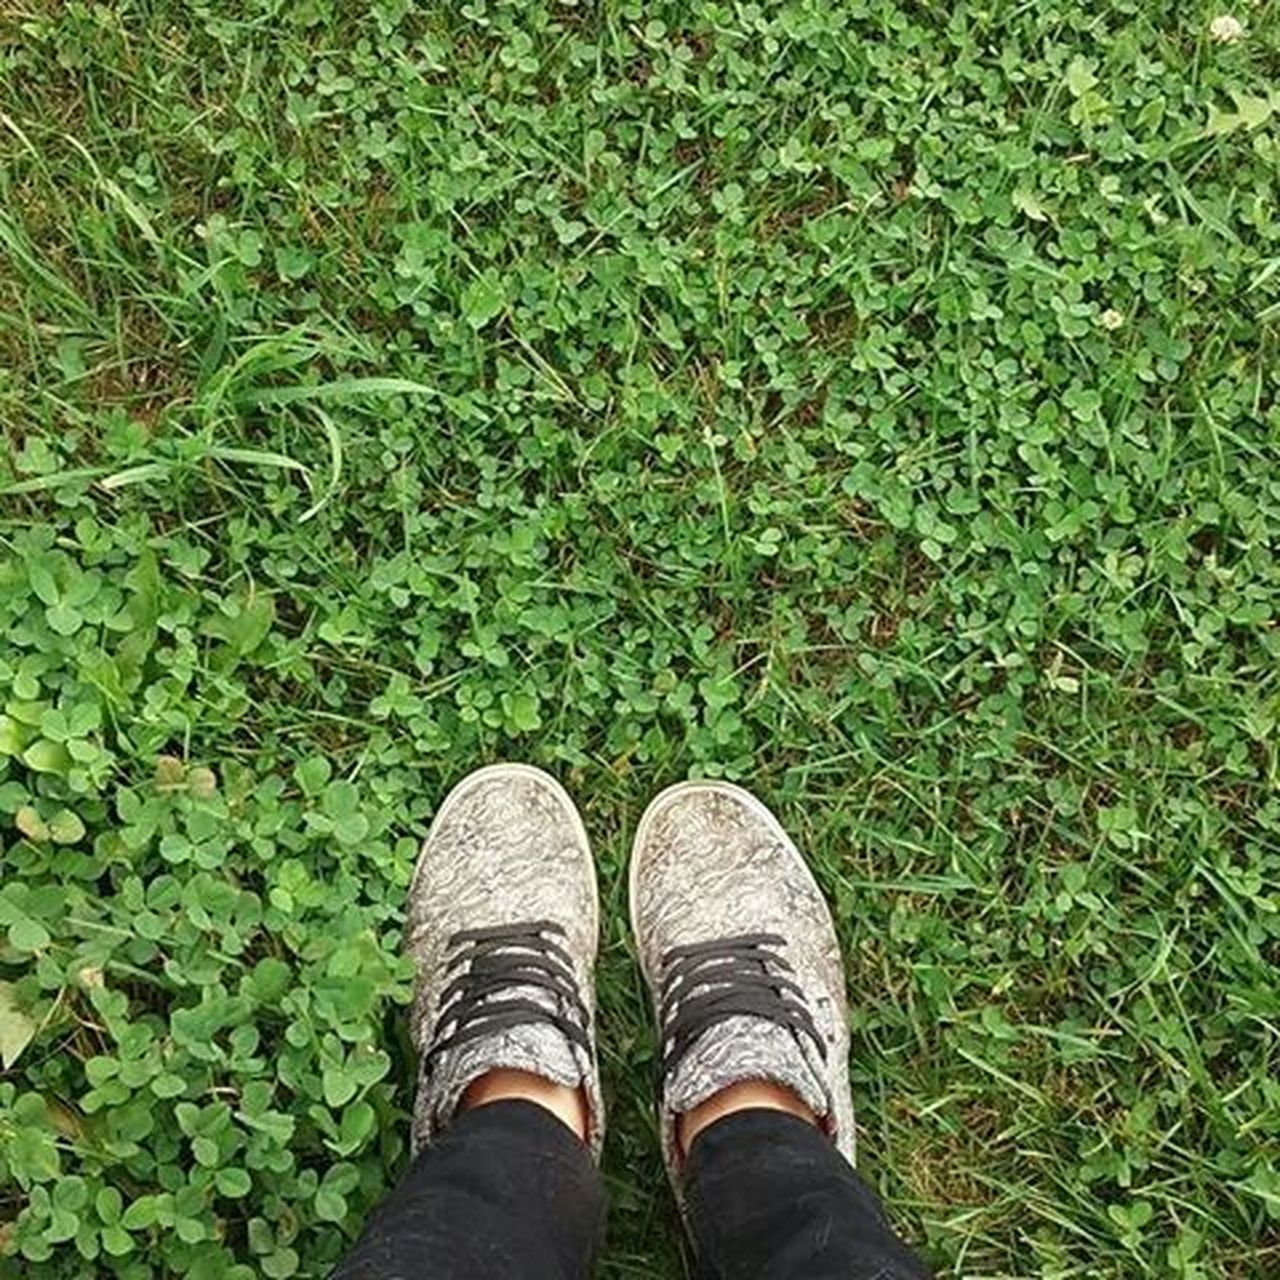 green color, shoe, one person, grass, standing, low section, human leg, day, human body part, real people, men, outdoors, growth, nature, one man only, people, adult